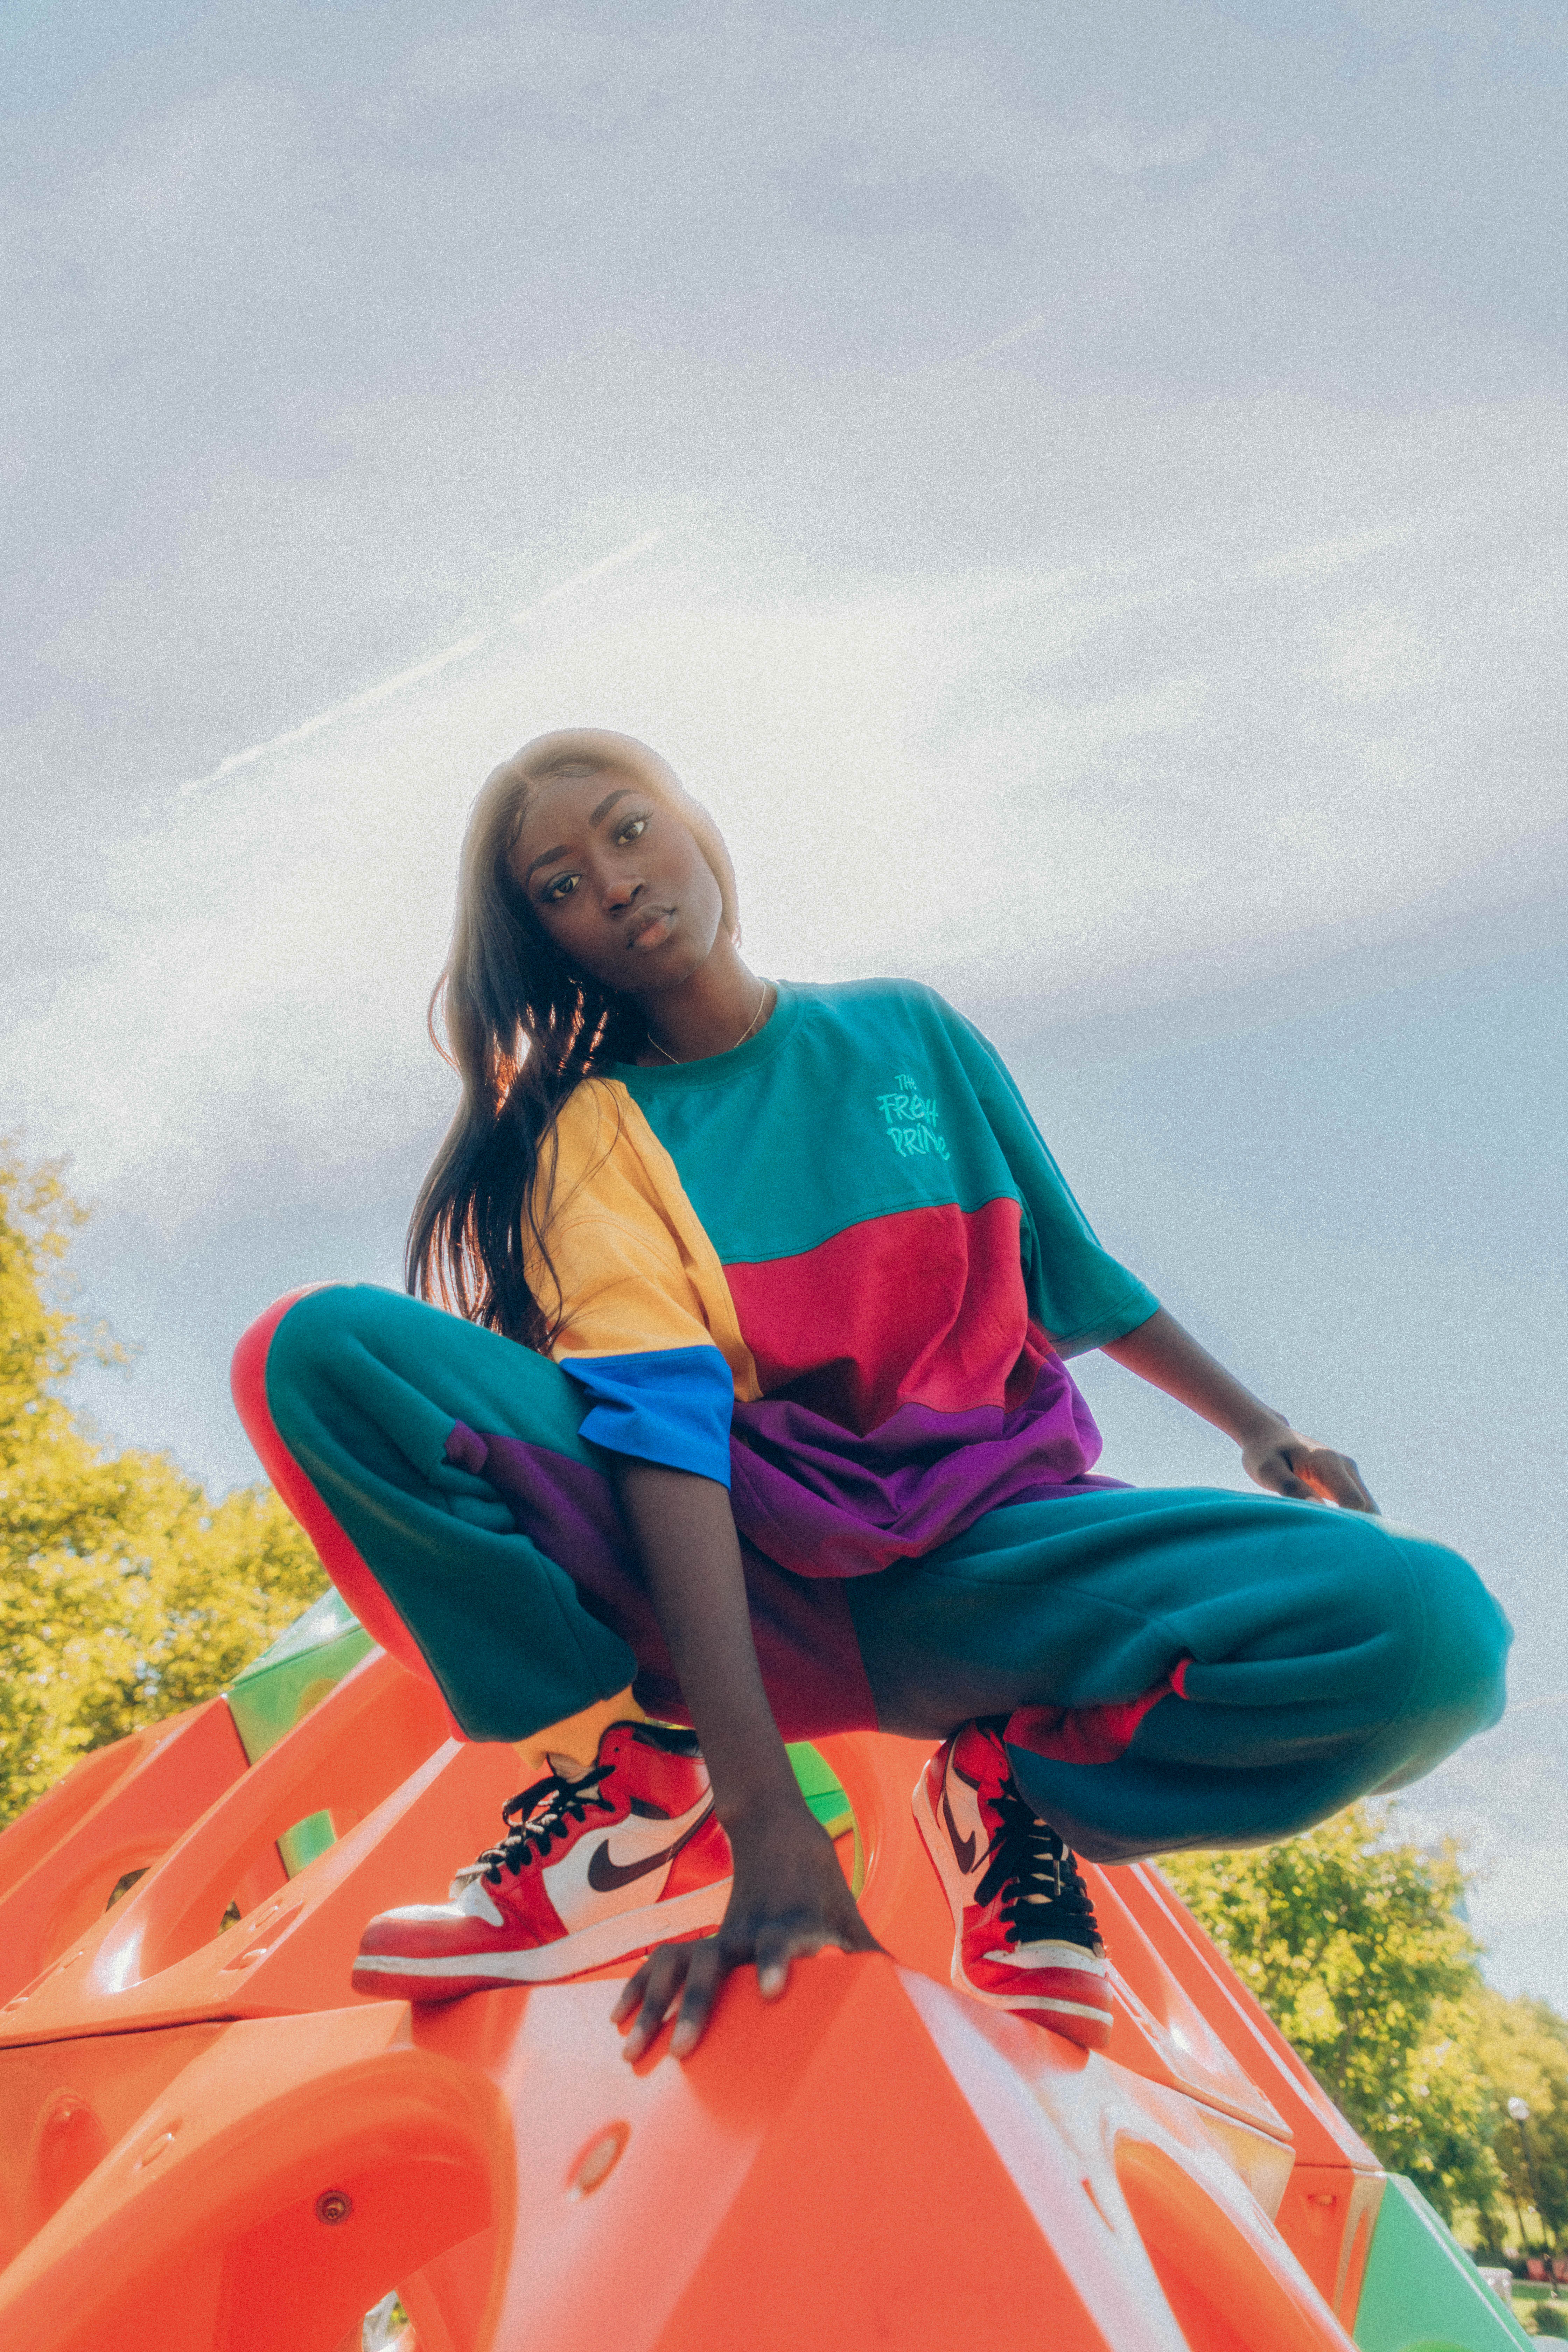 'The Fresh Prince of Bel-Air' Celebrates 30th Anniversary With Capsule Collection